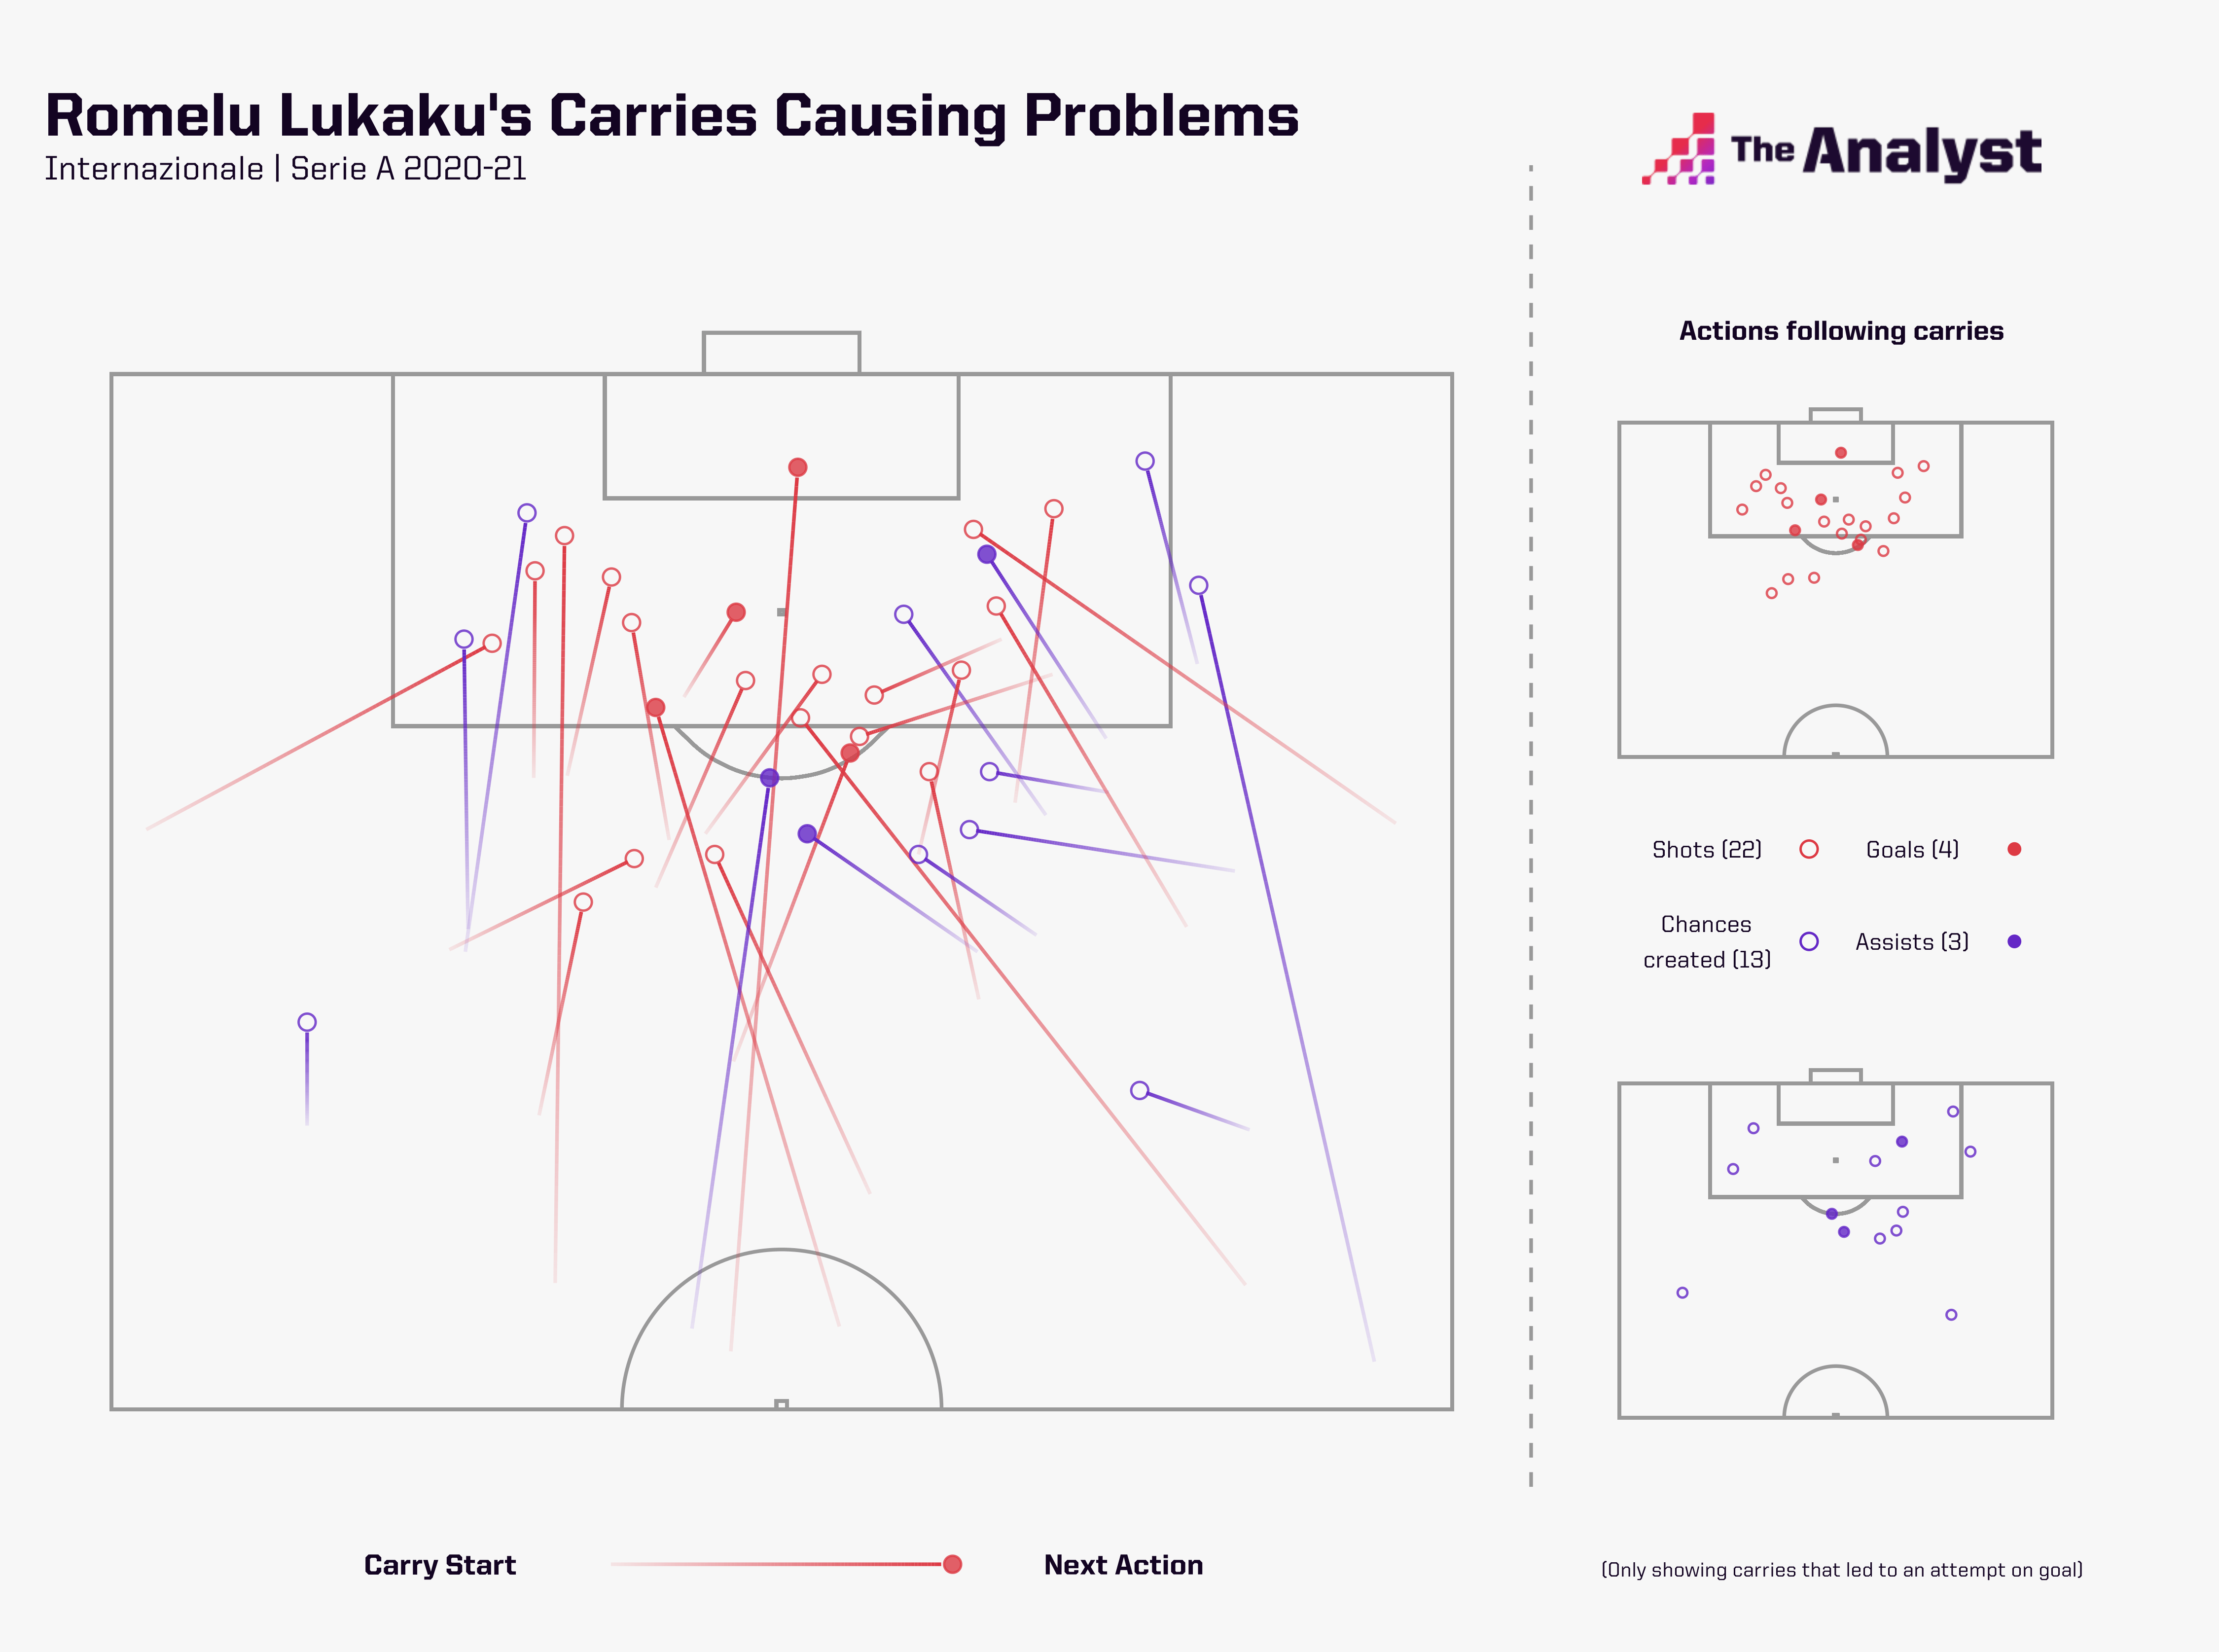 Romelu Lukaku causing problems with ball carries in 2020-21